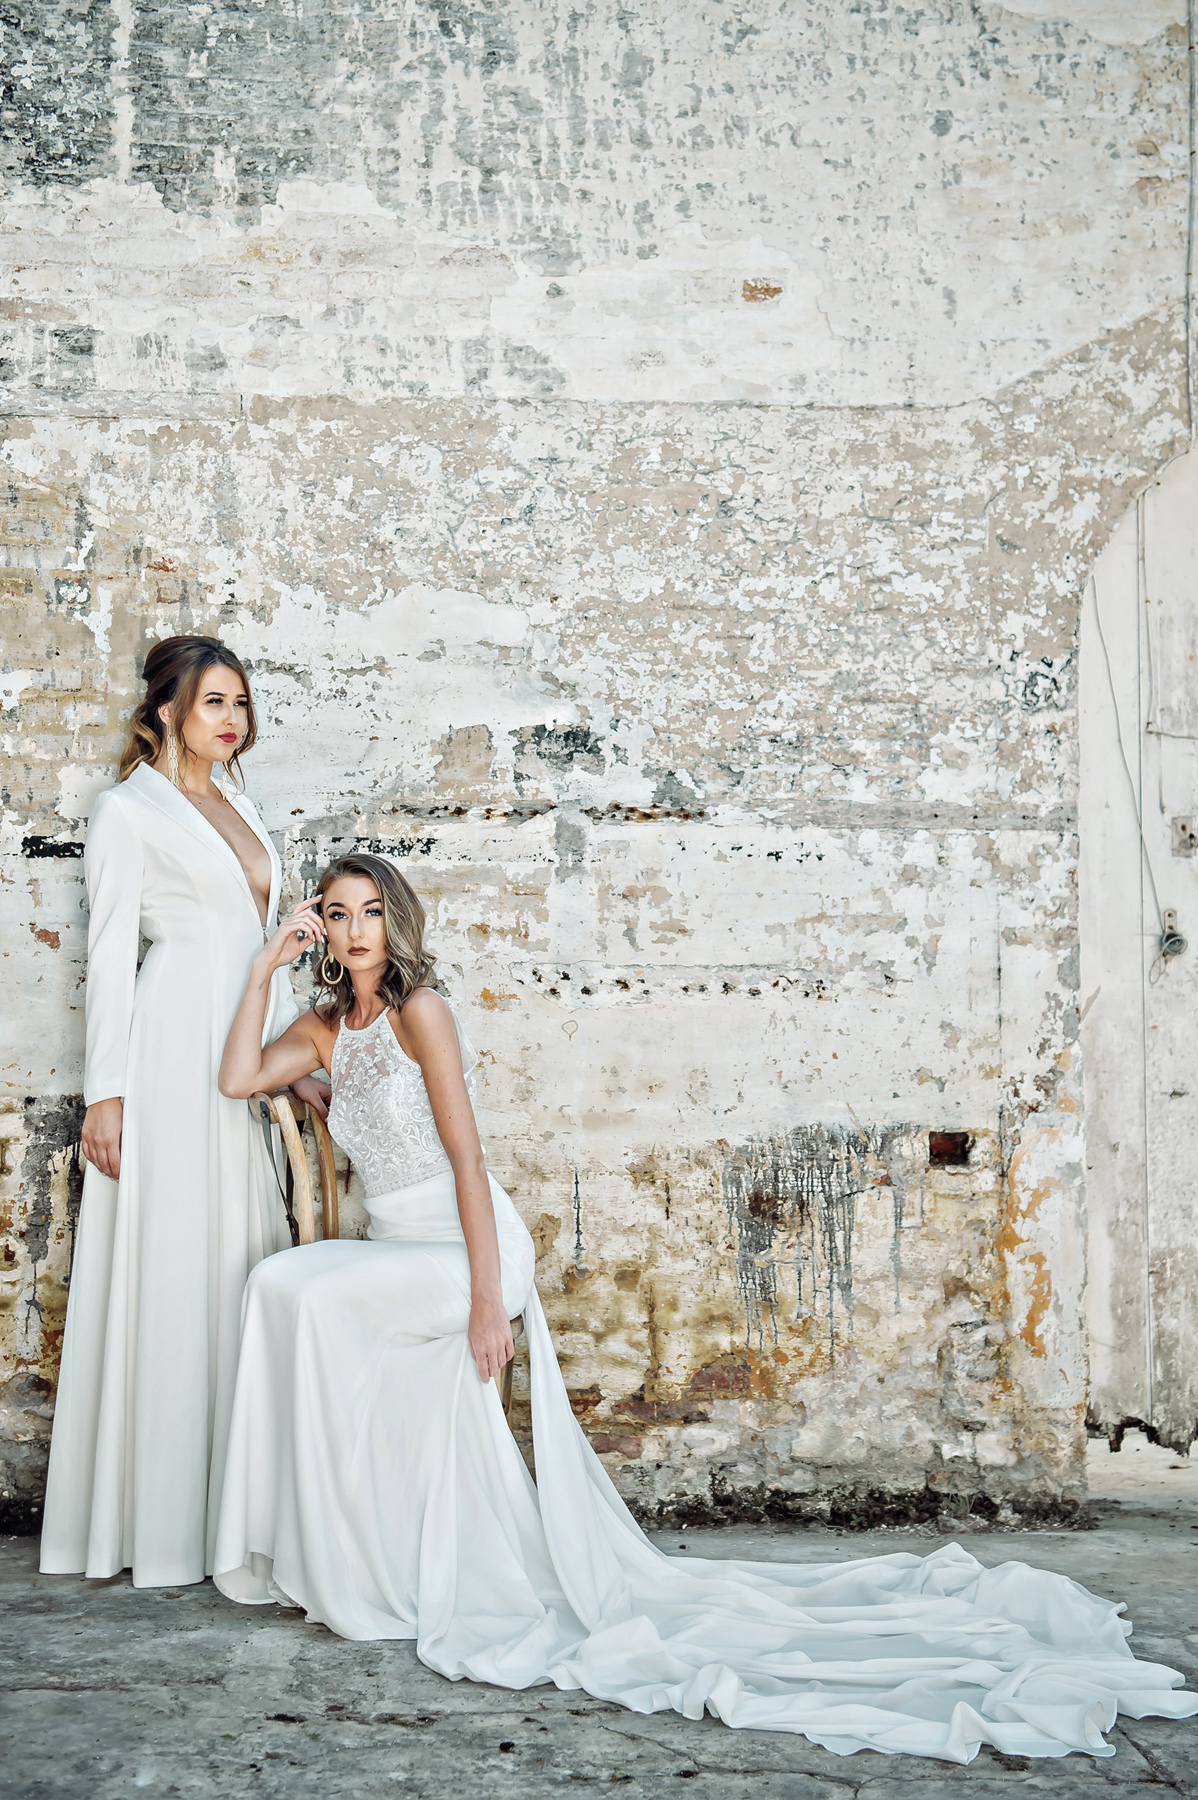 Watters Aire Barcelona - Fross Wedding Collections Bridal Boutique, Uckfield, Sussex: Modern, Glamorous, Statement Wedding Dresses